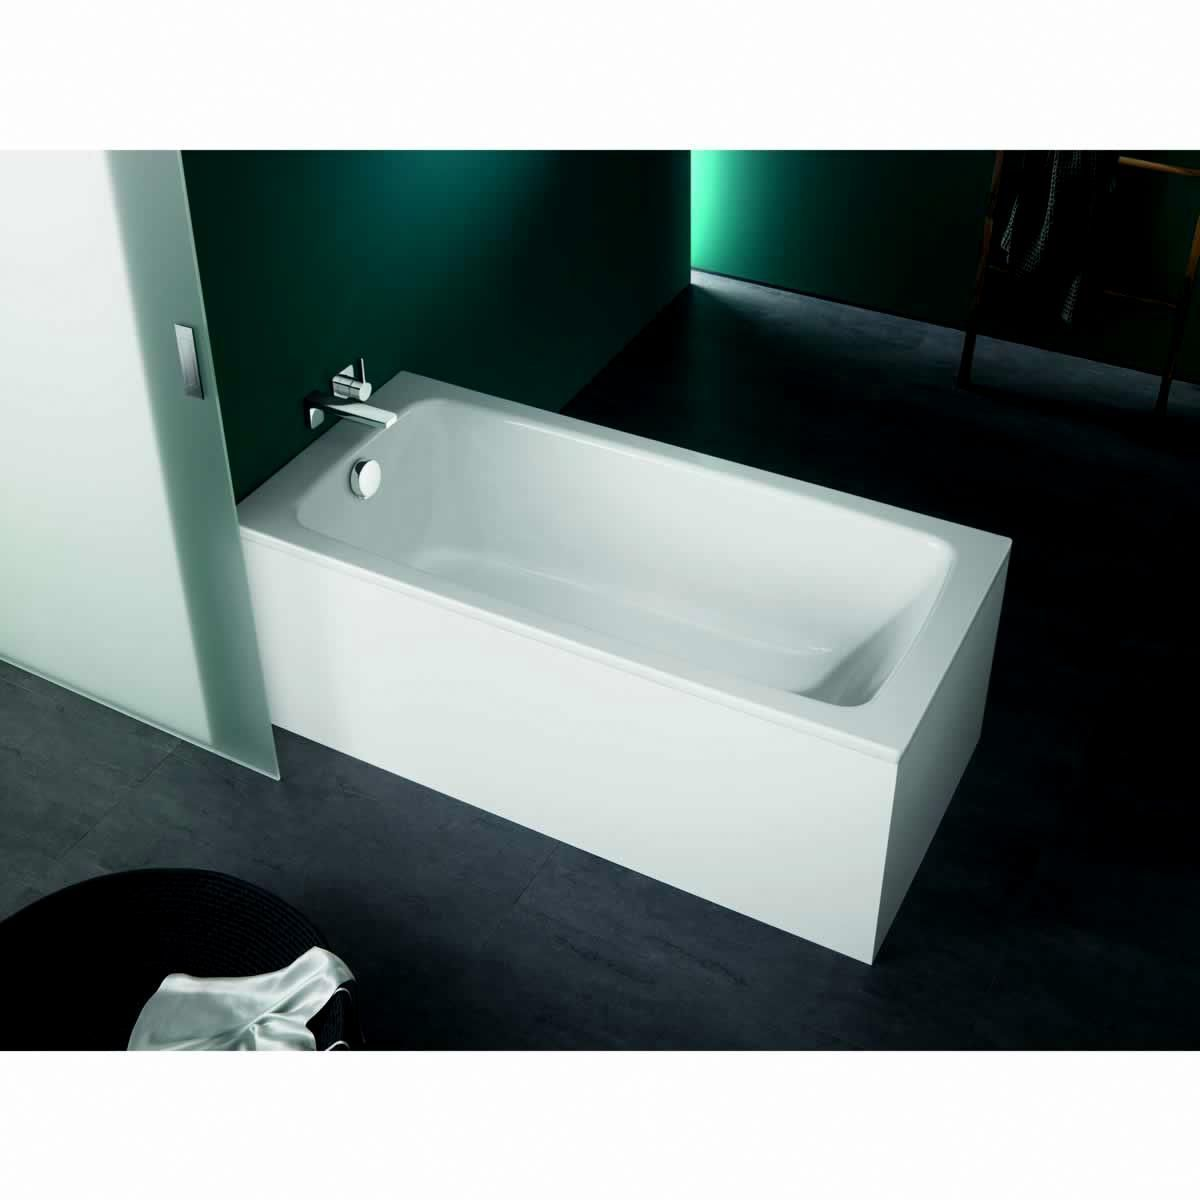 dd10d5c5ce01ef Kaldewei Cayono Luxury Steel Bath   Bath, Steel and Luxury